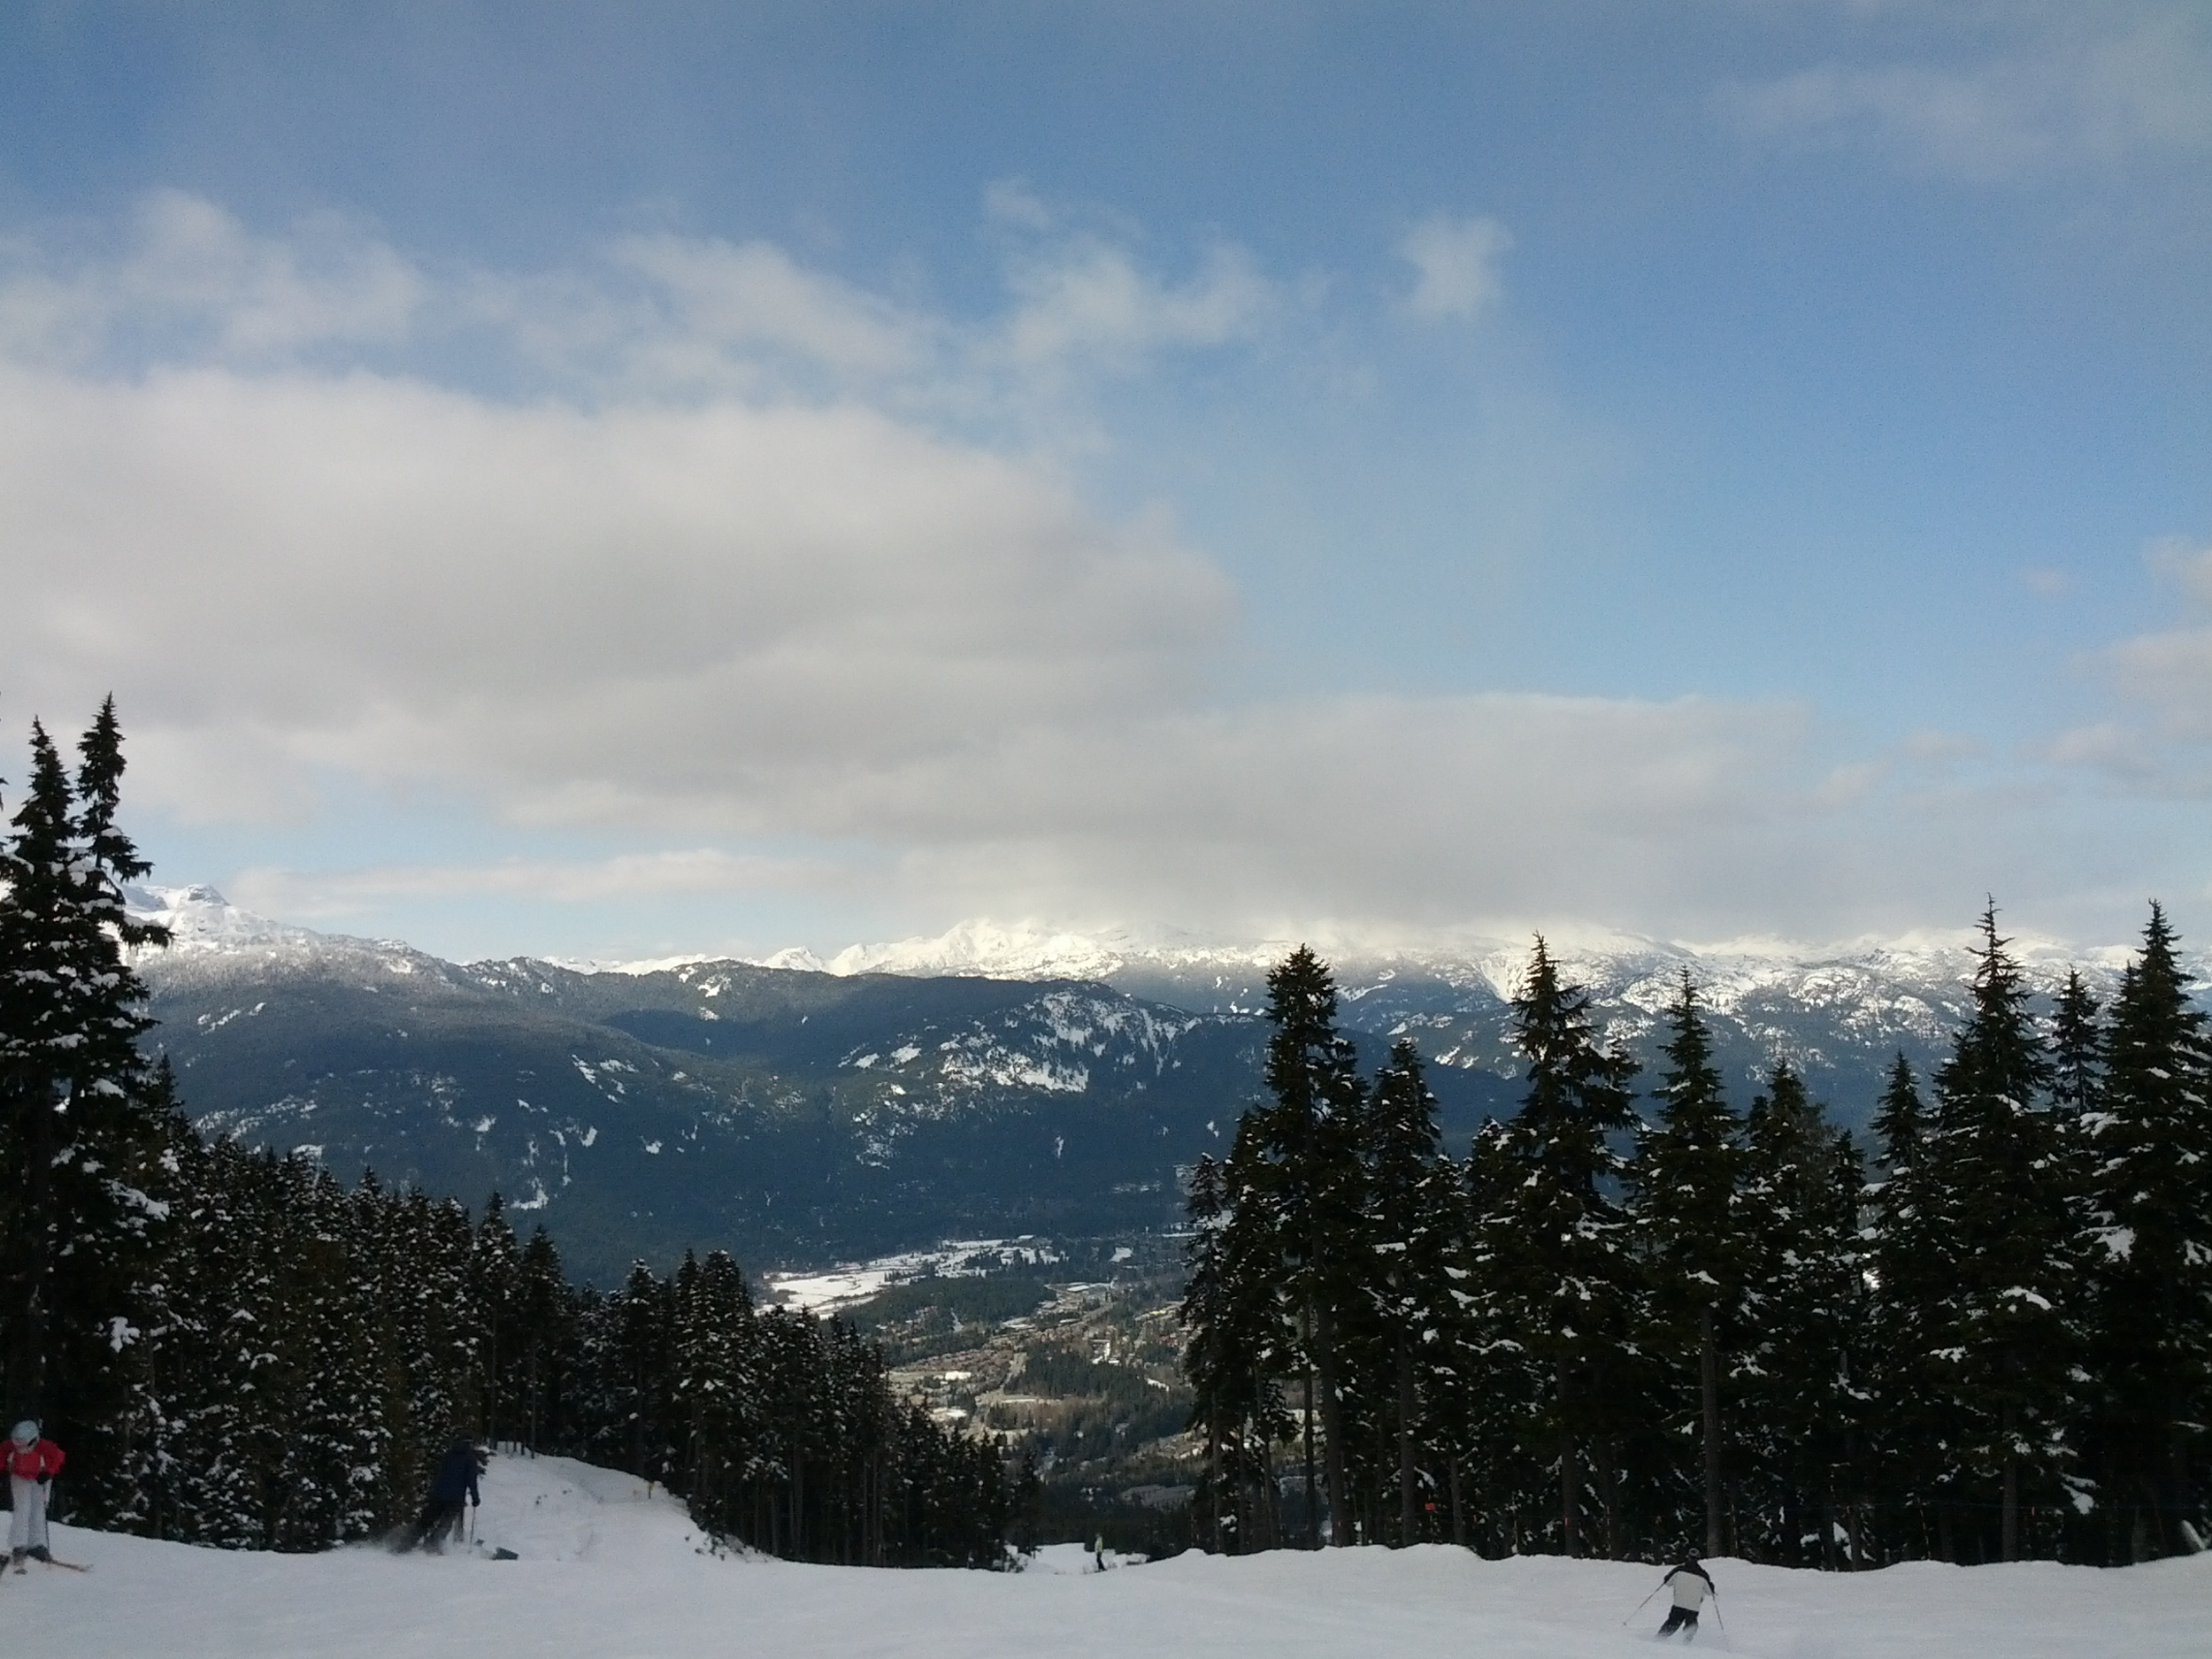 Looking out on Whistler Village and the Coastal Mountains beyond.